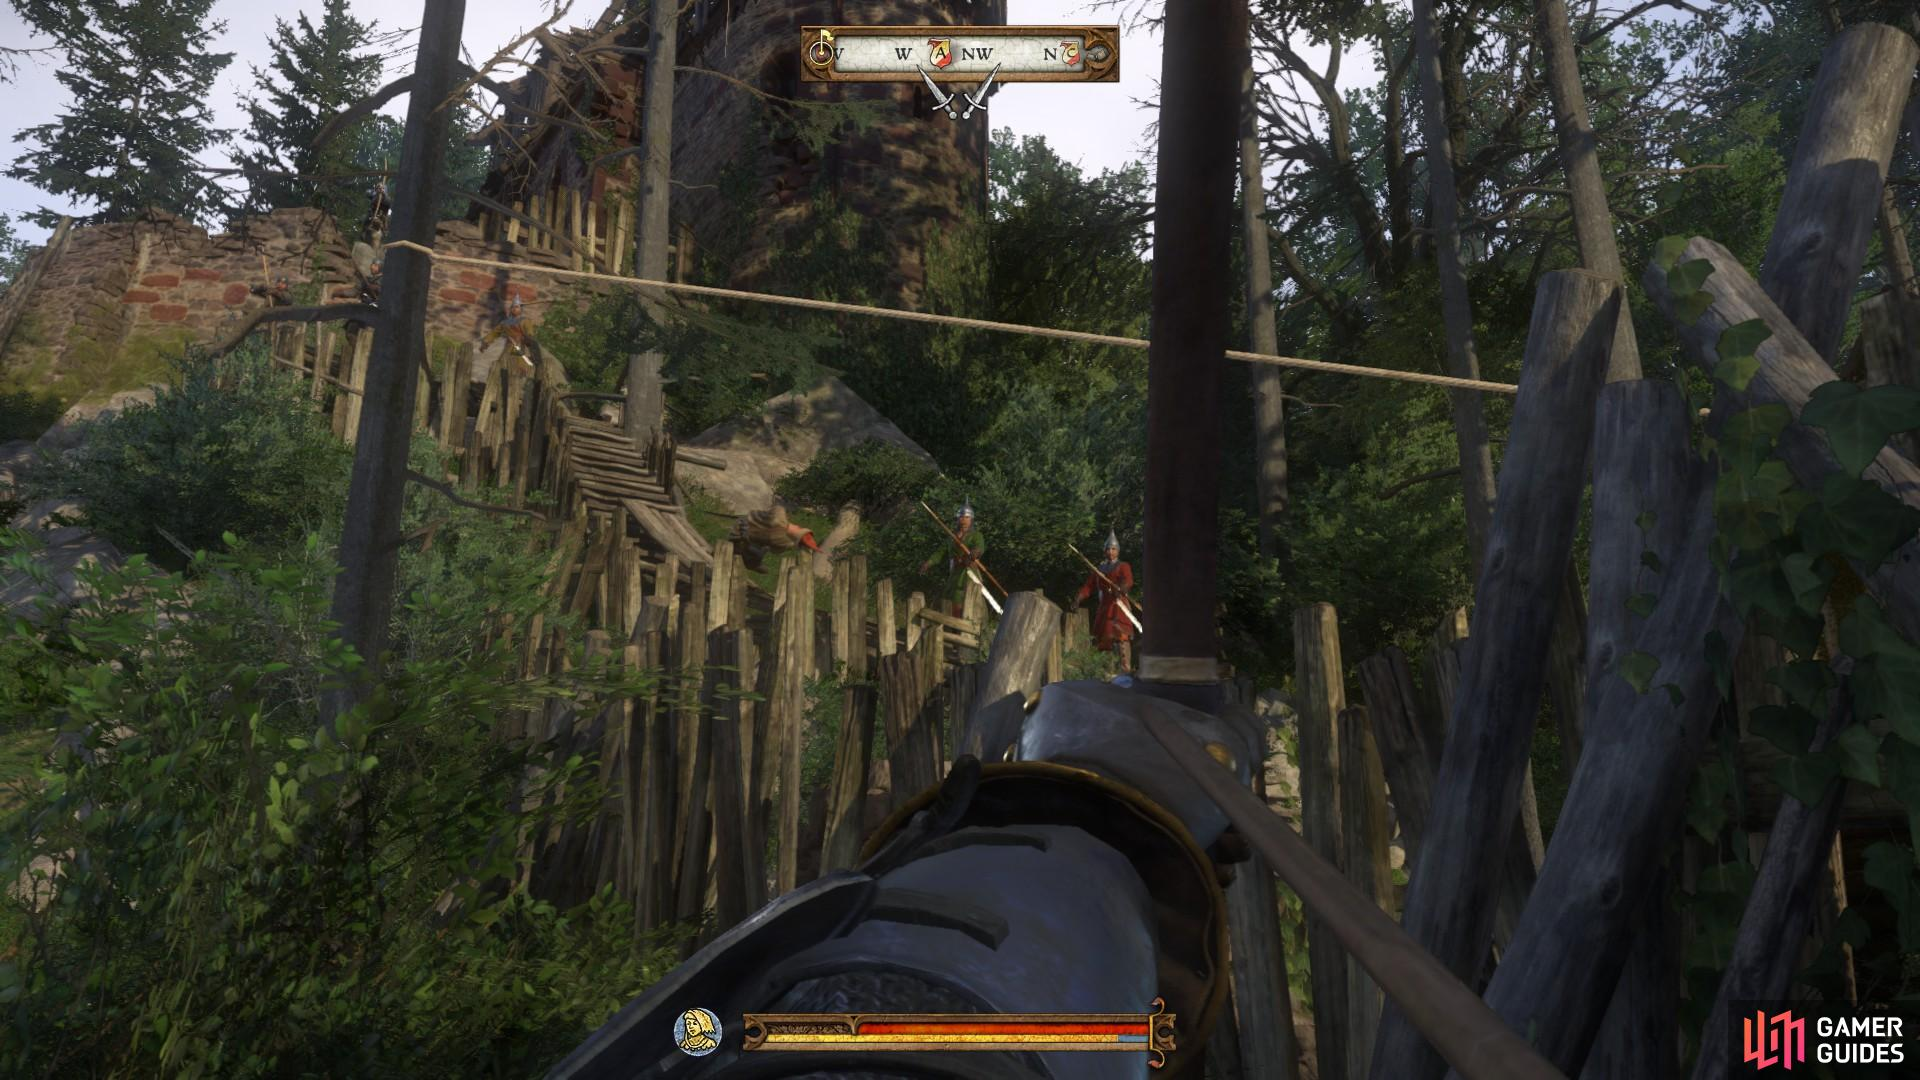 As you enter the camp be sure to deal with the archers on the ramparts to the left of the entrance.